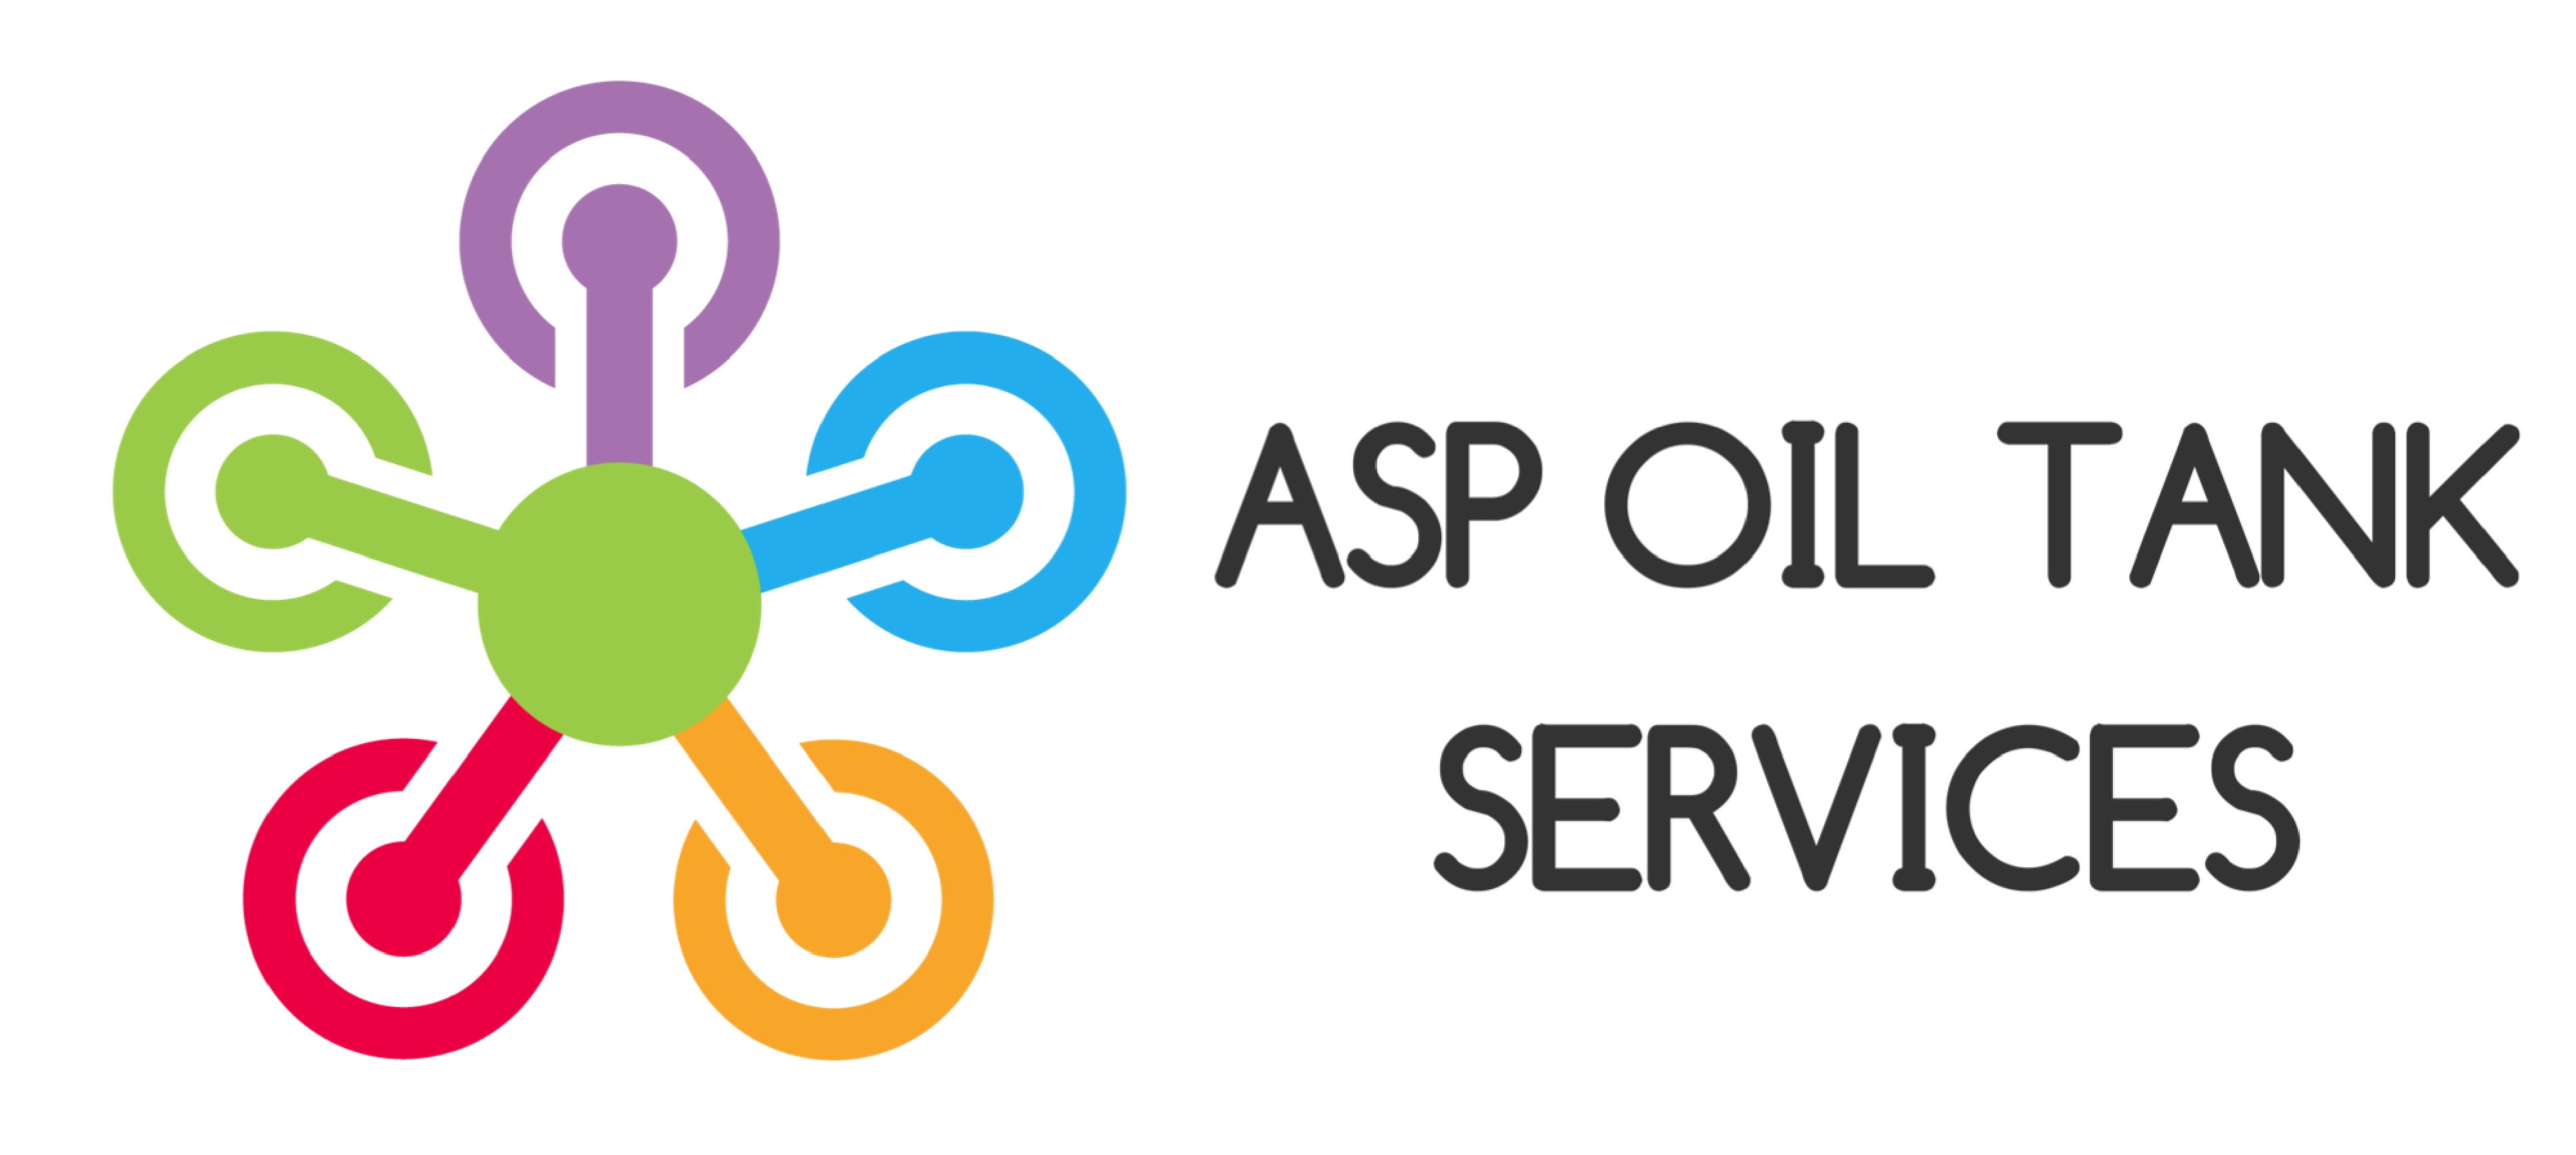 ASP Oil Tank Services